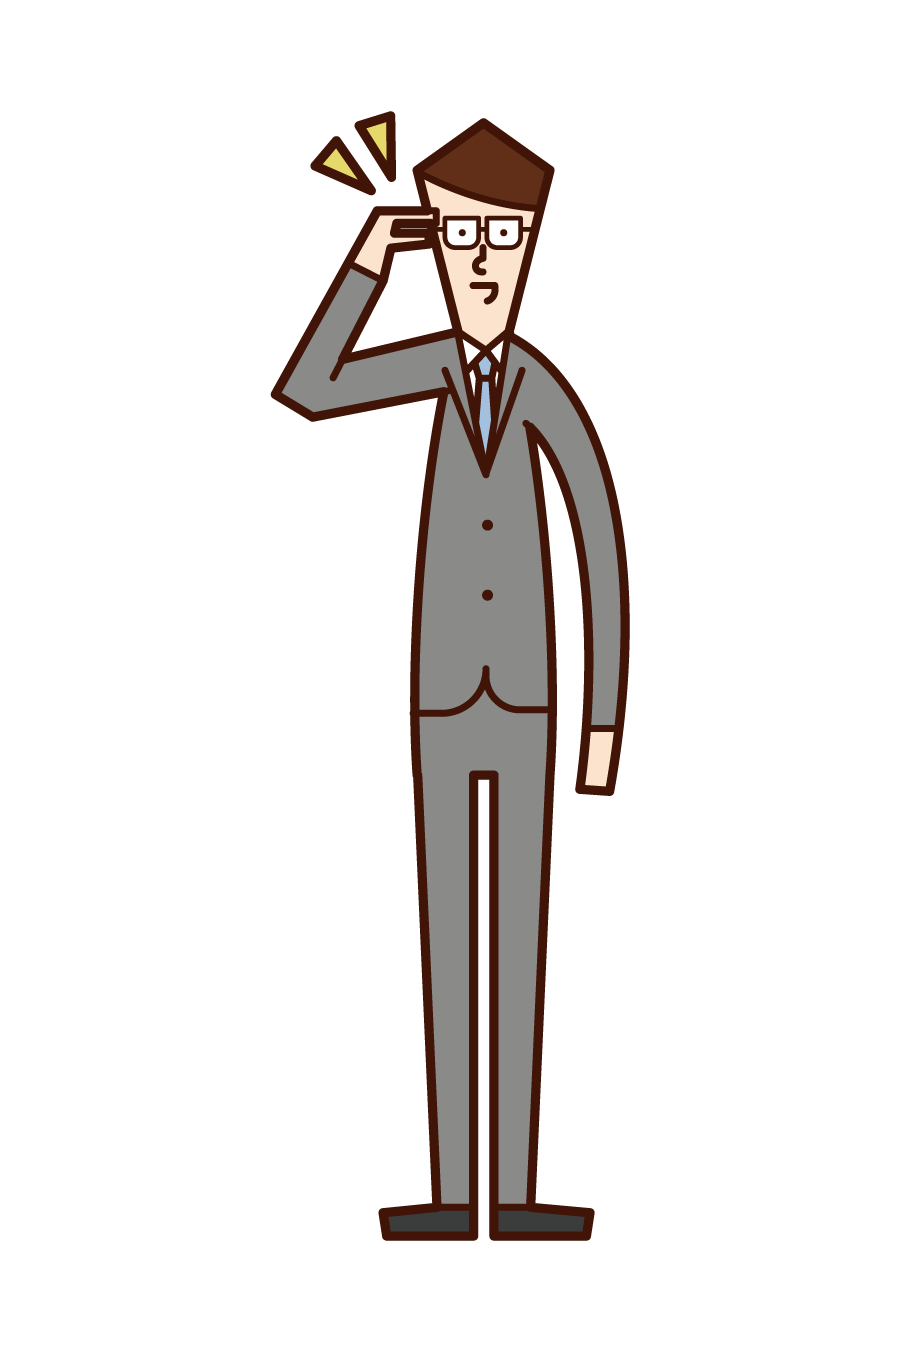 Illustration of a man putting his finger on glasses